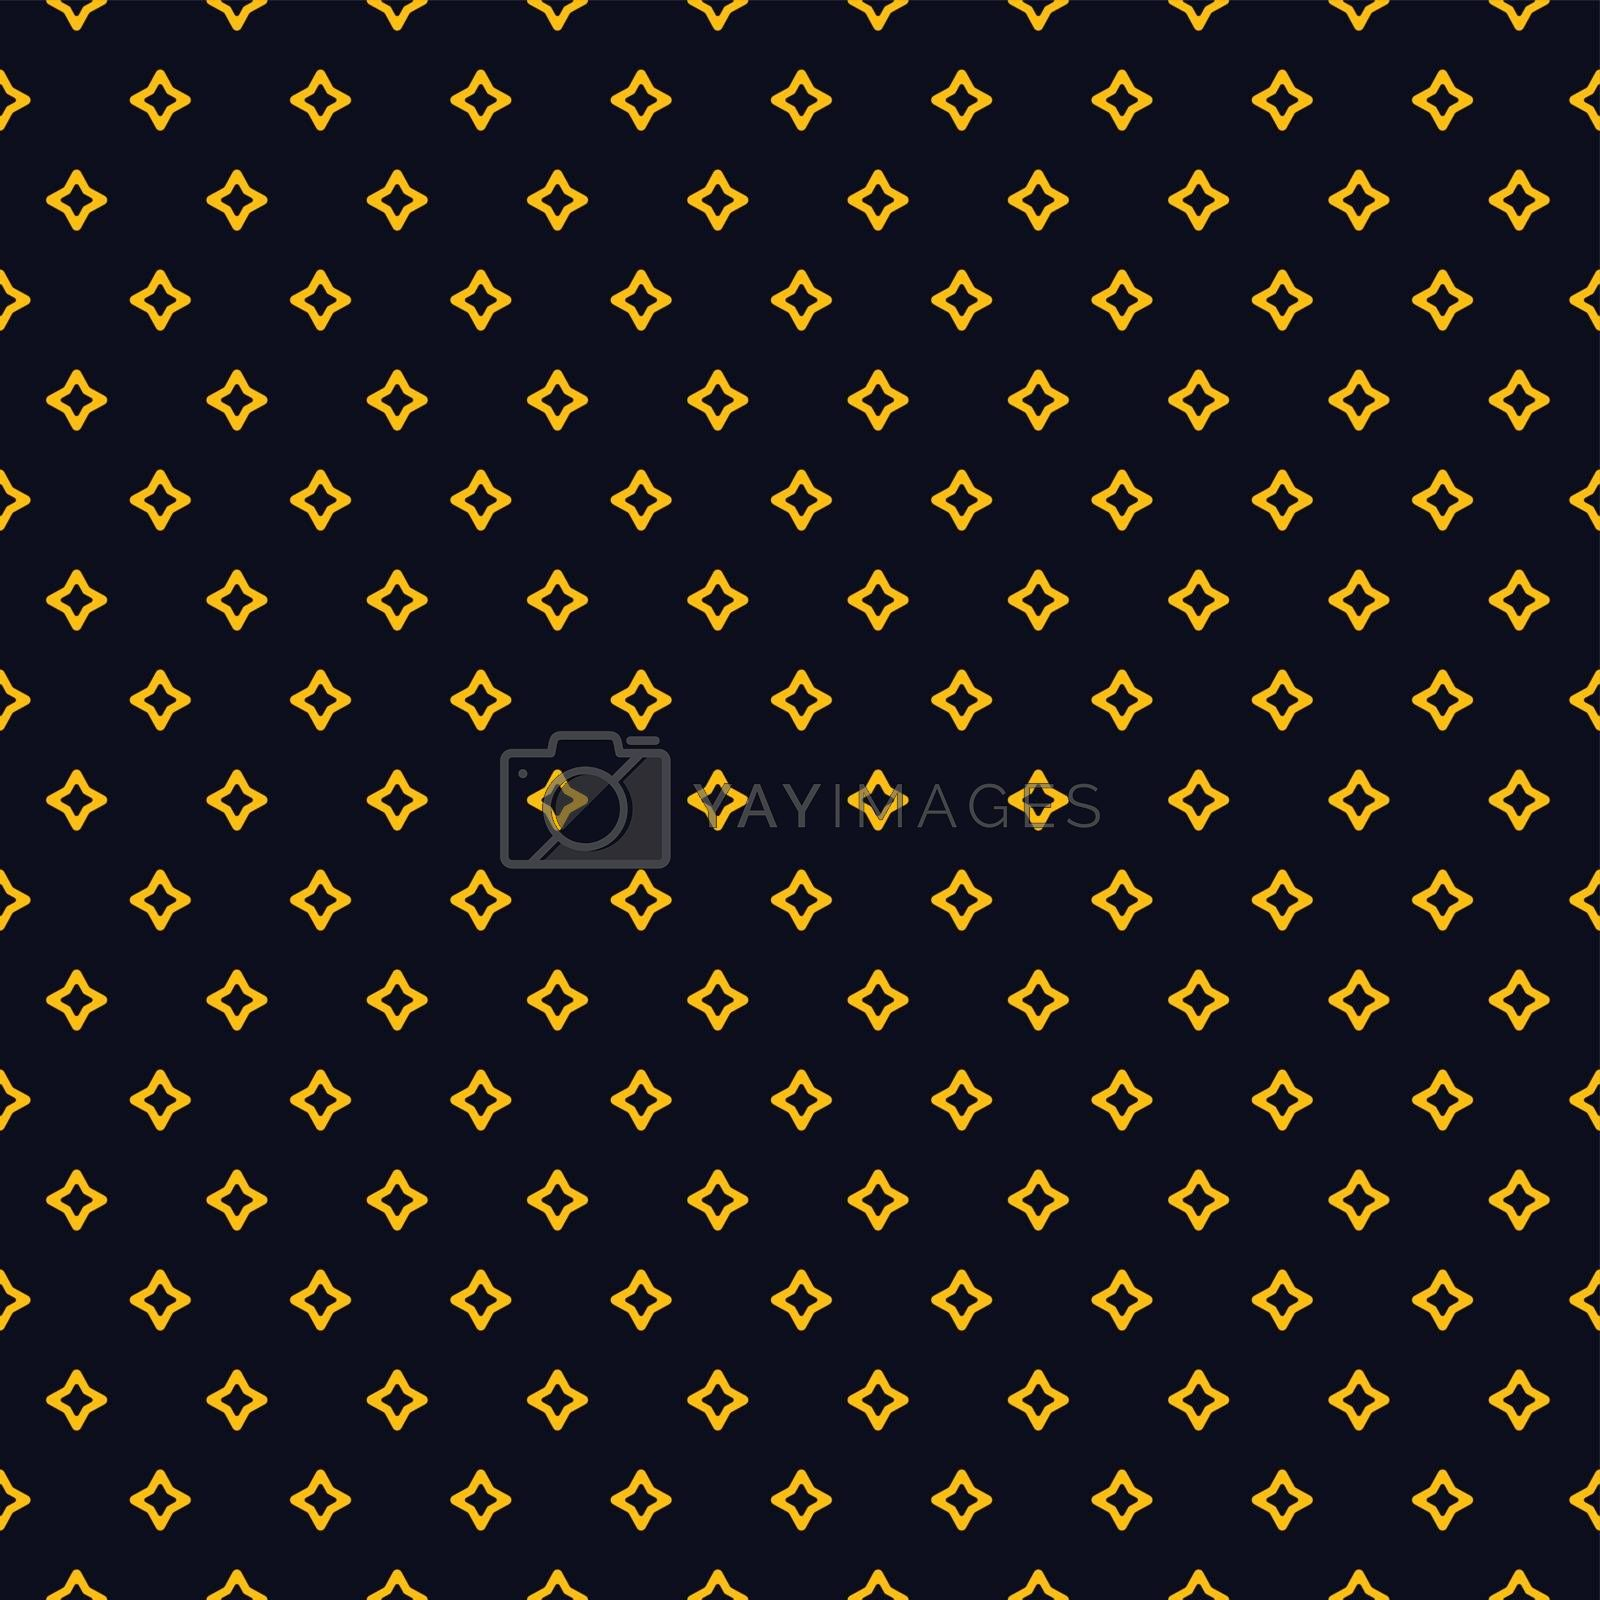 Vector Seamless Geometry Pattern for Postcards, wallpaper, web background, Print and fabric